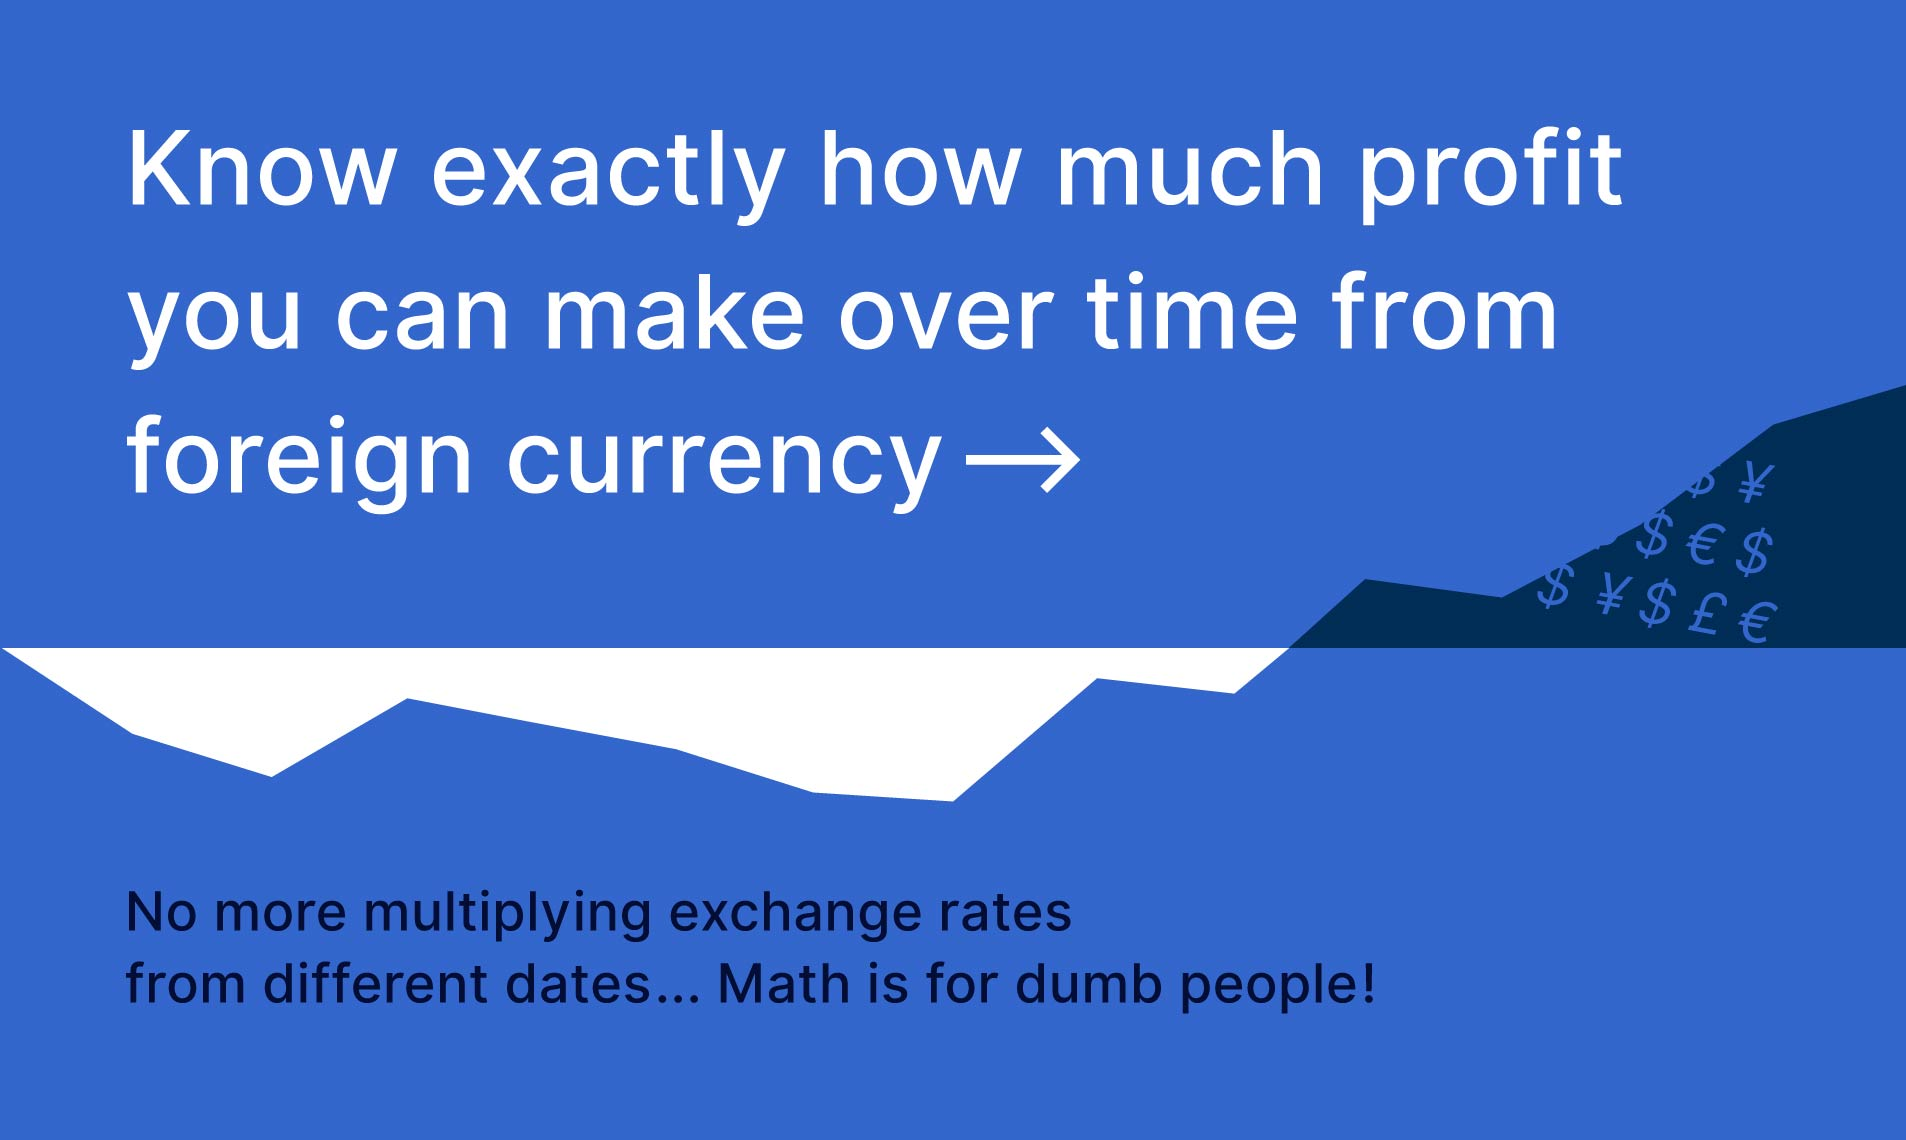 Know exactly how much profit you can make over time from foreign currency.